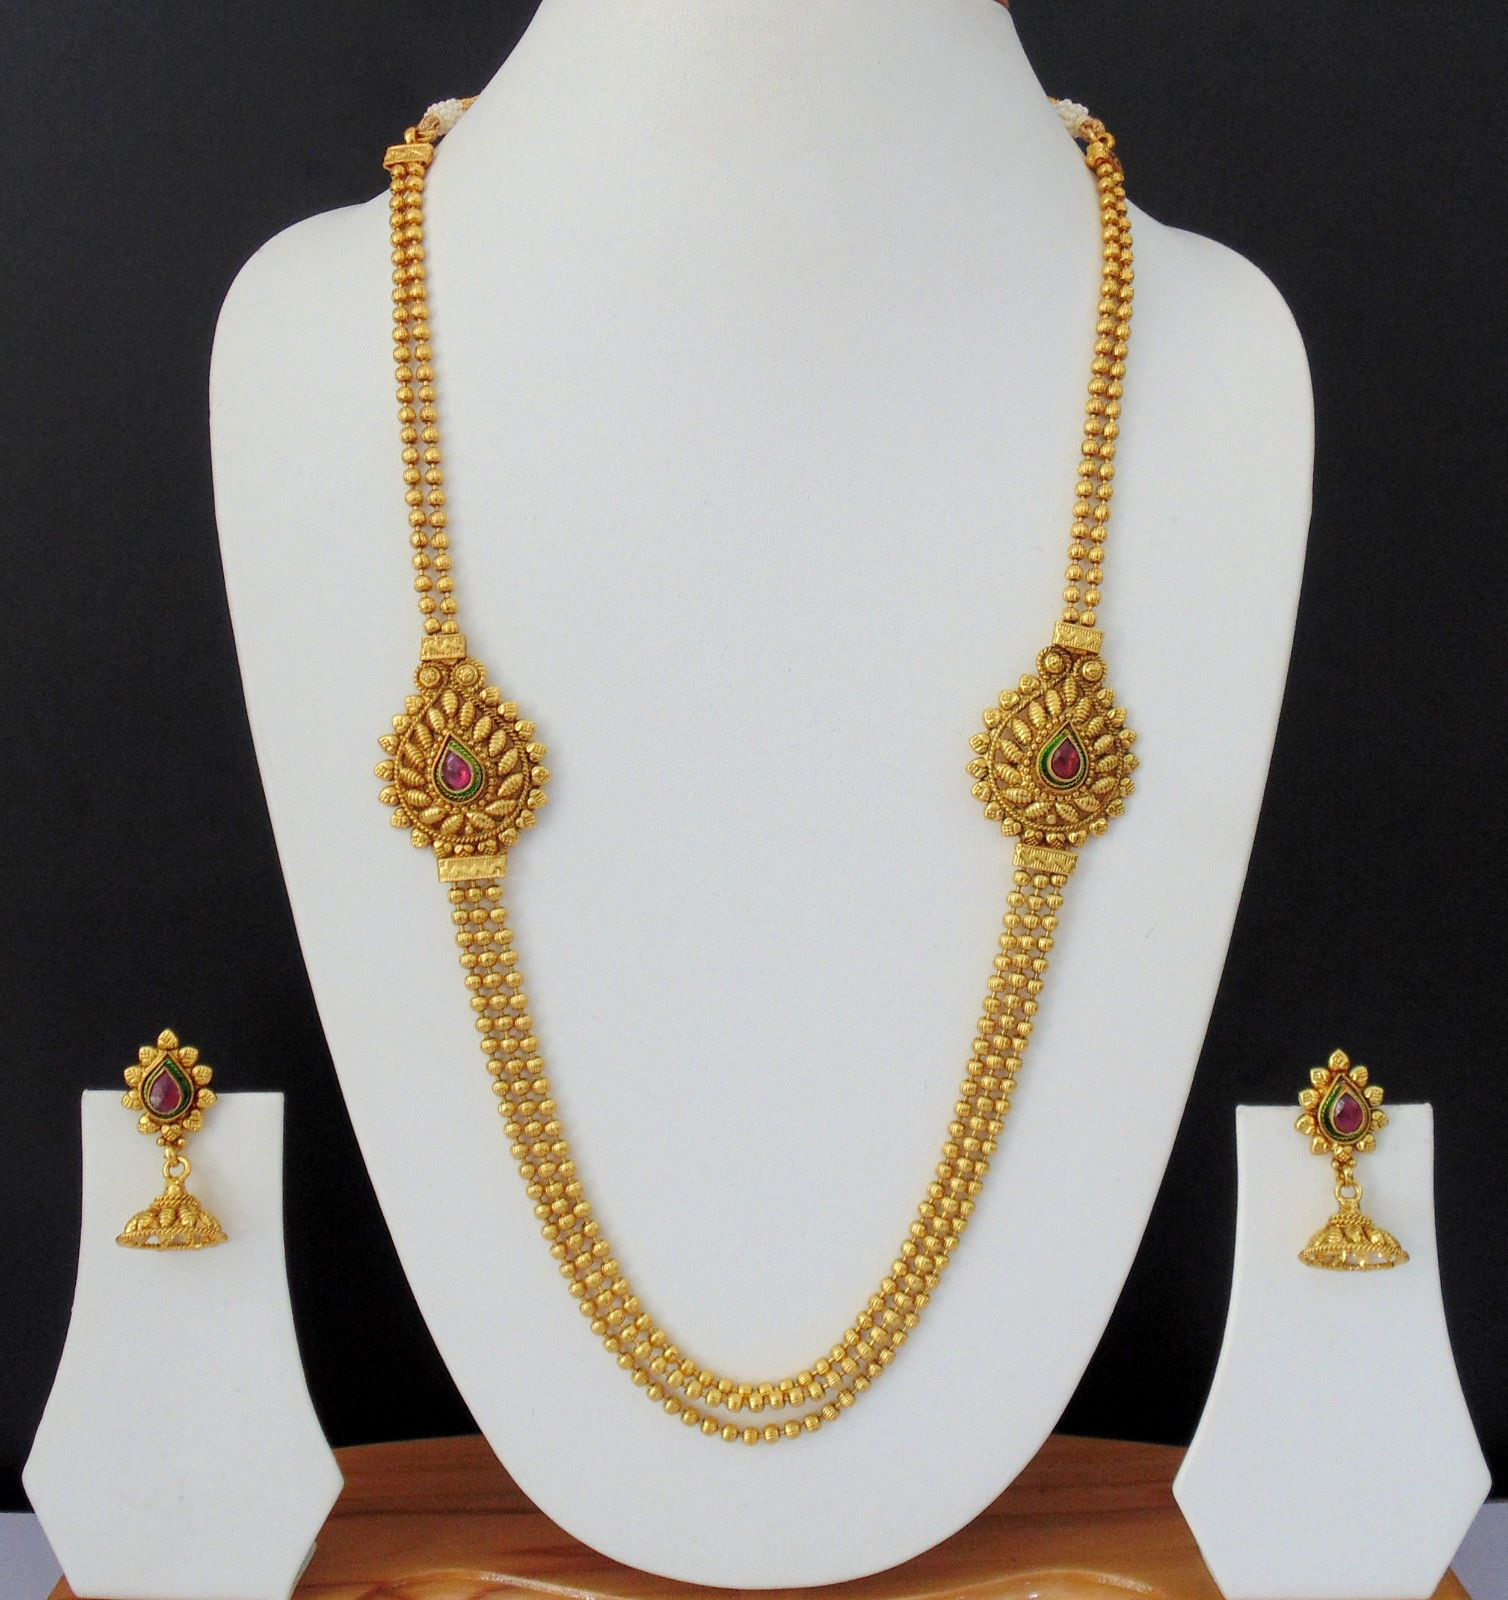 Indian Gold Jewellery Necklace Sets Google Search: Gold Indian Jewelry - Google Search